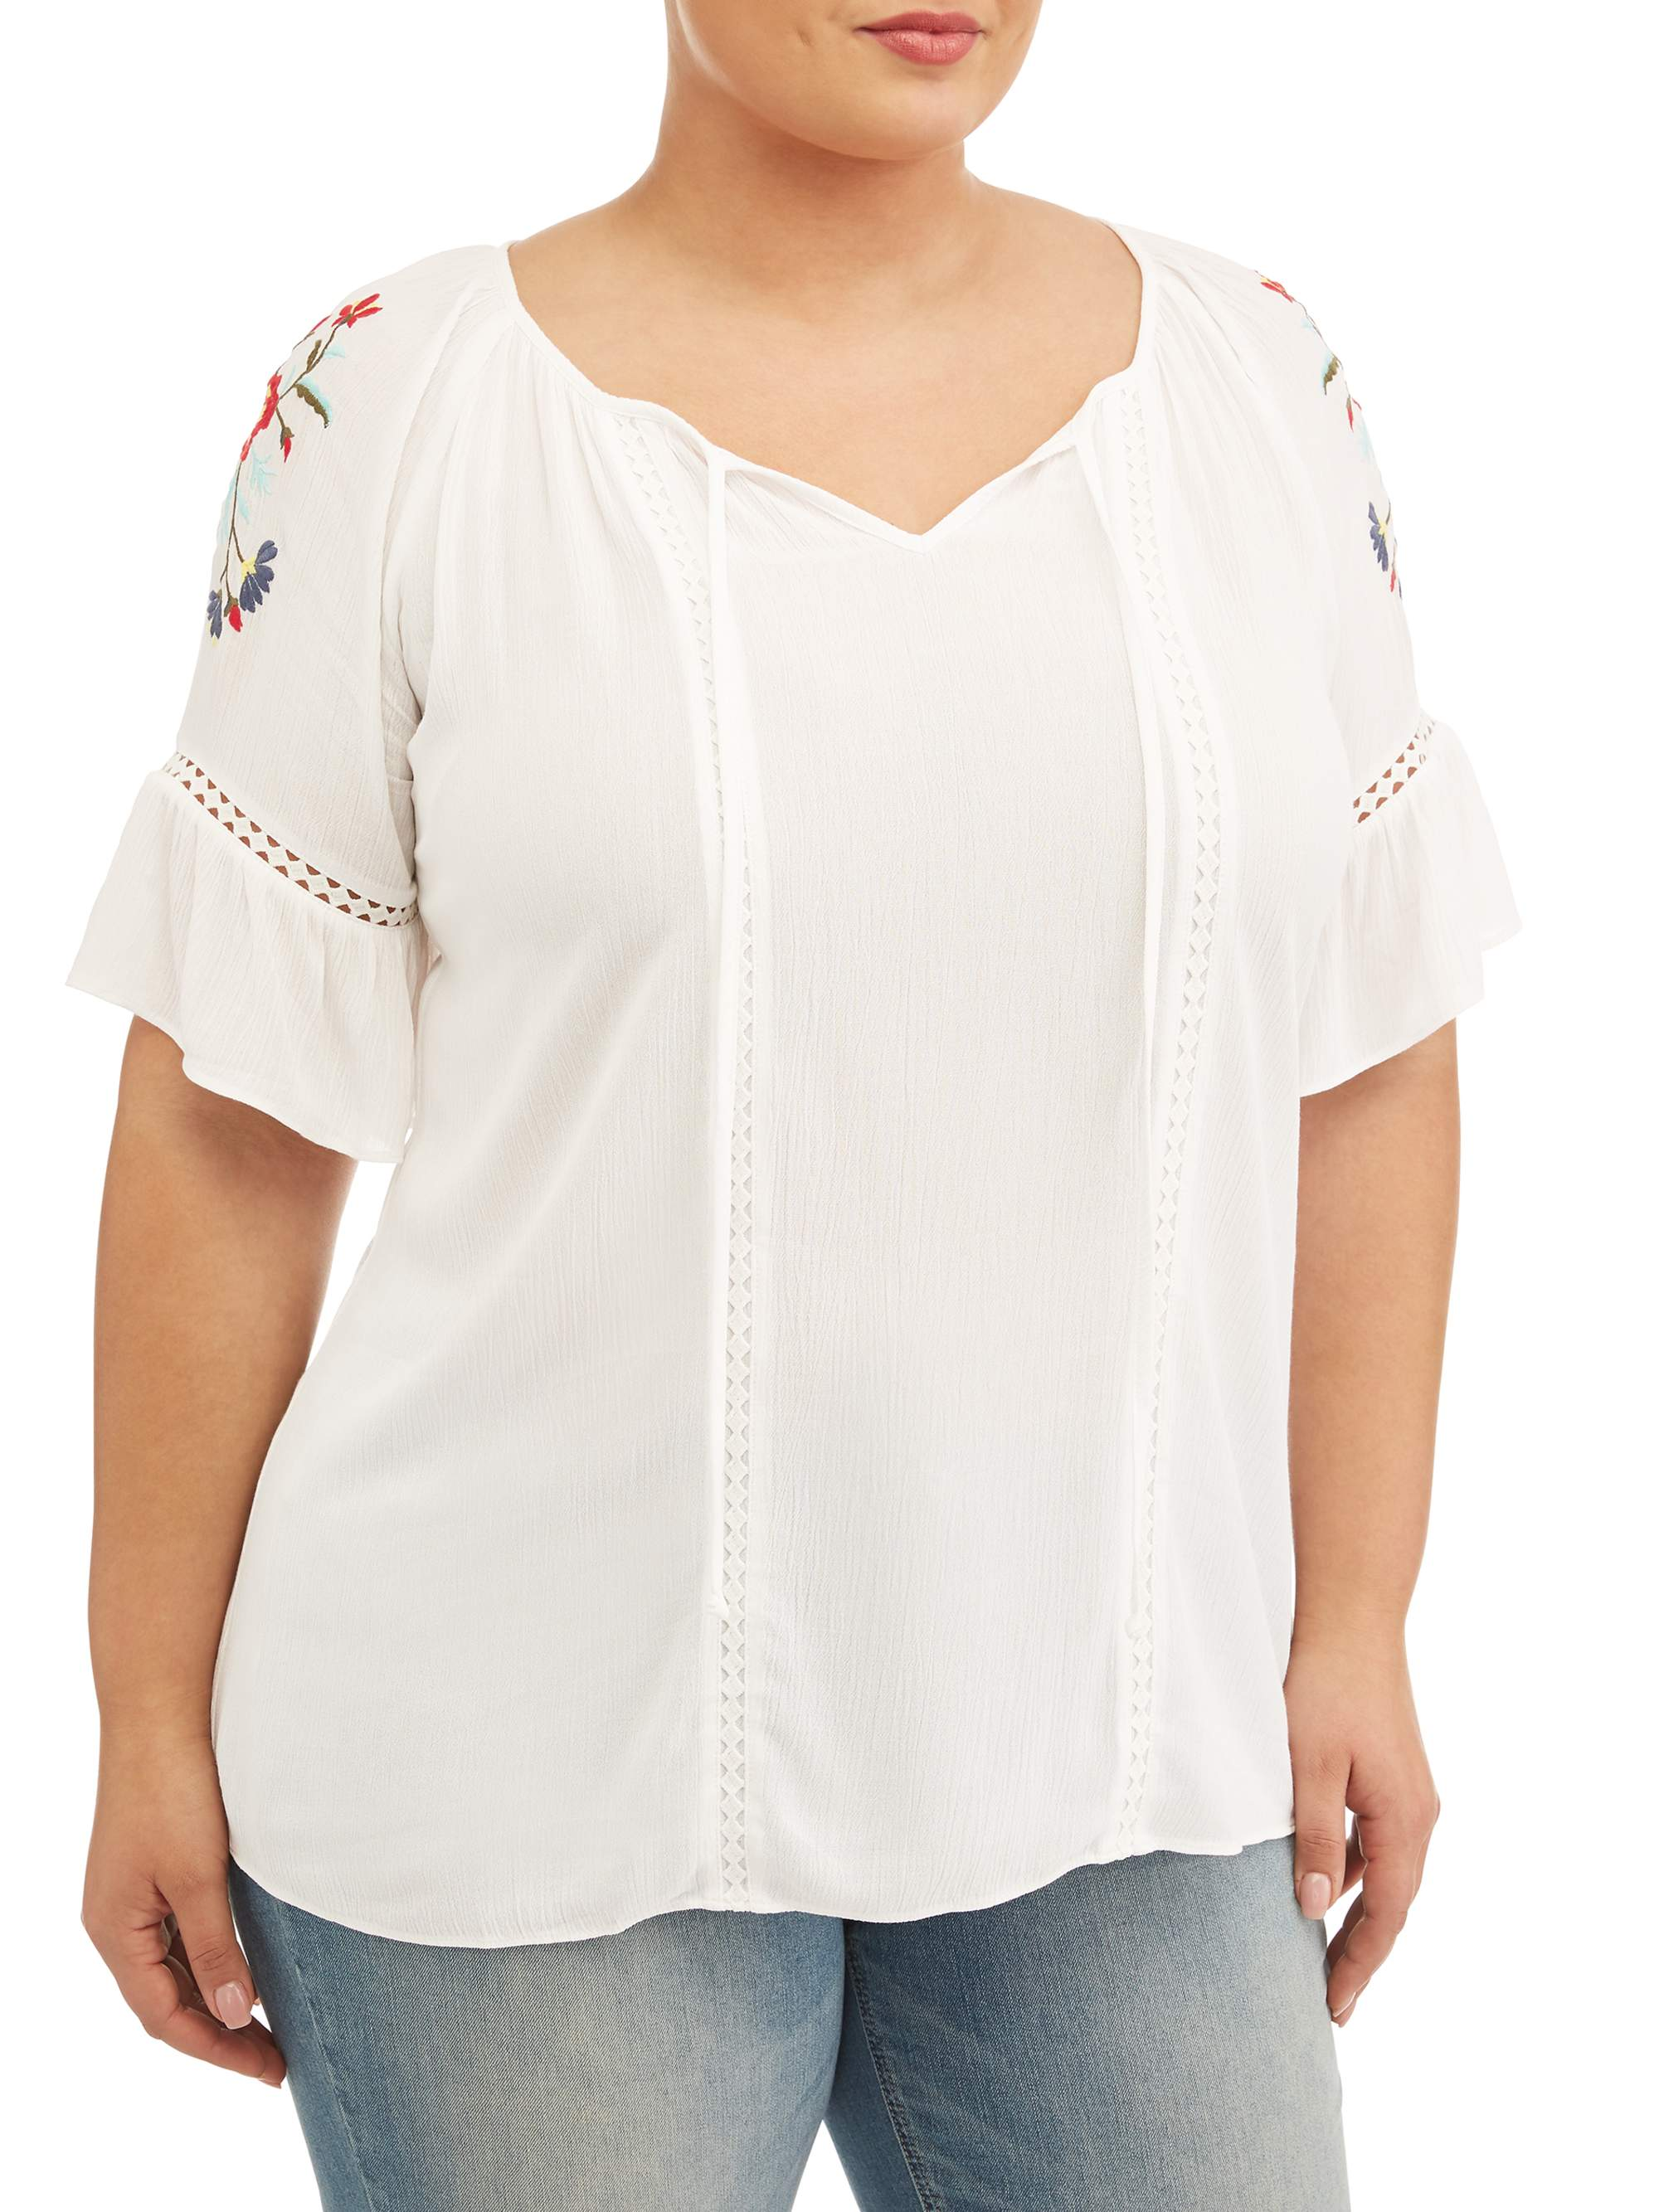 Women's Plus Size Embroidered Peasant Top